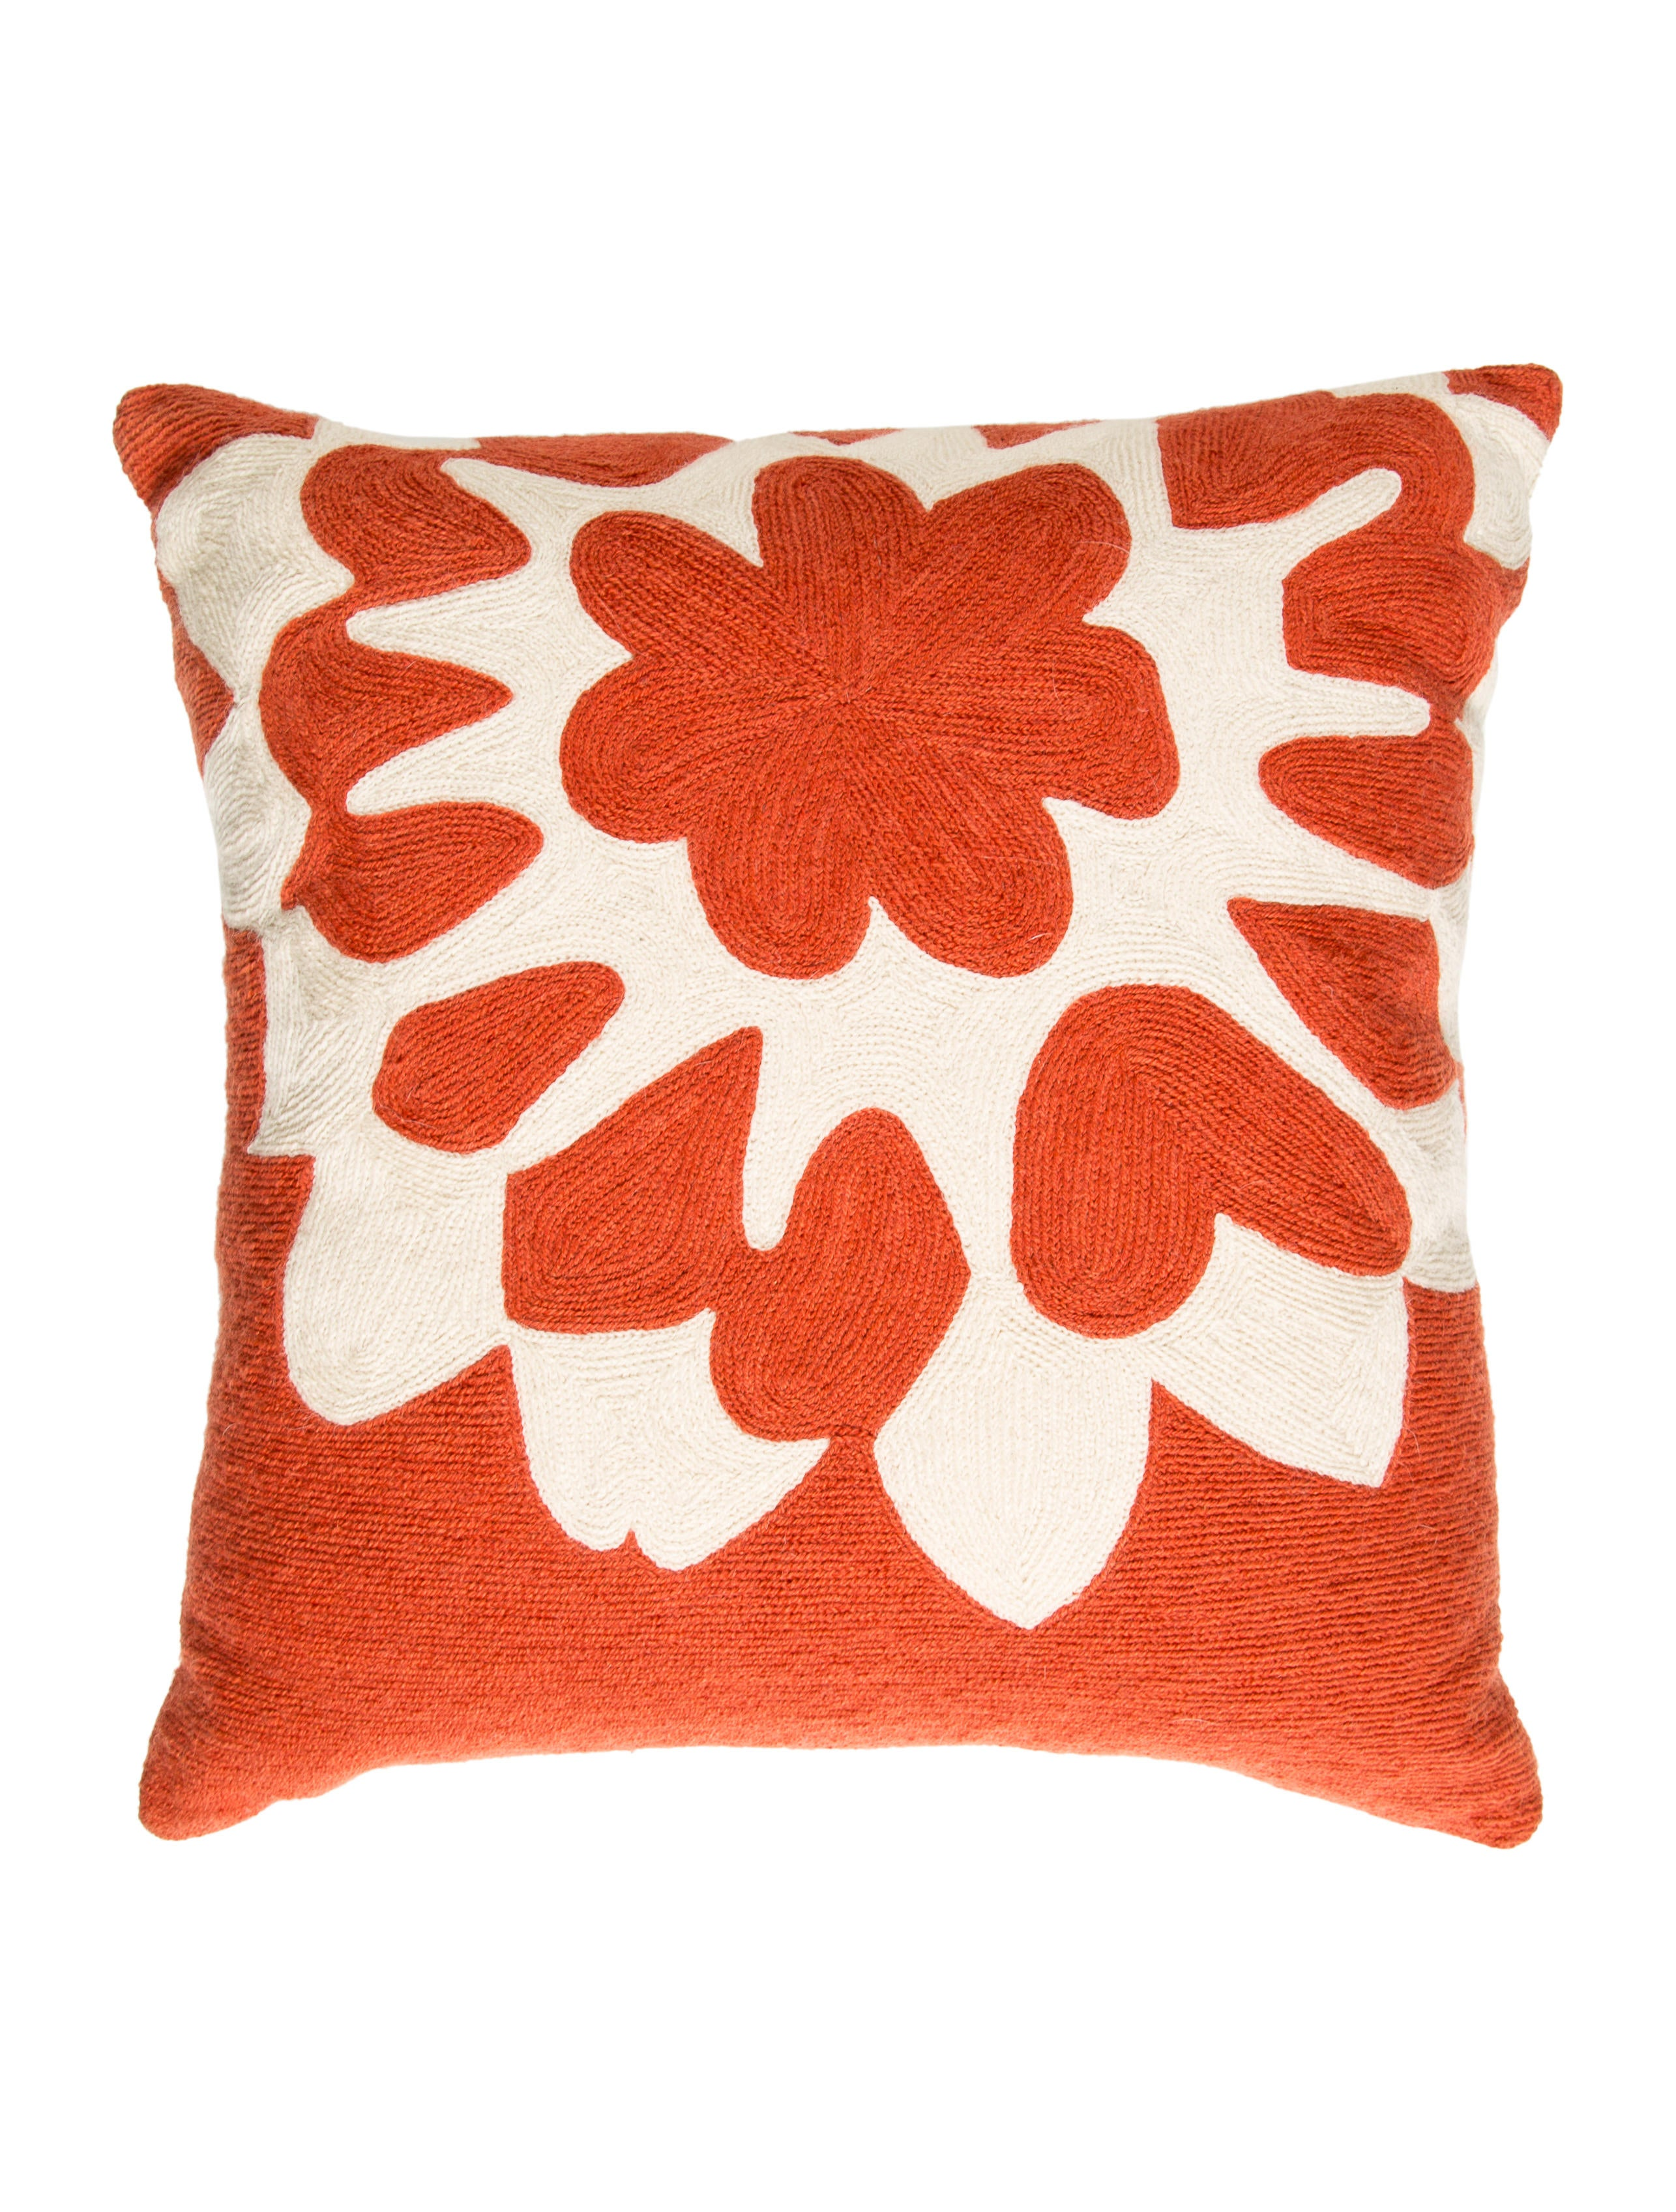 Judy Ross Throw Pillow - Pillows And Throws - PILLO20130 The RealReal